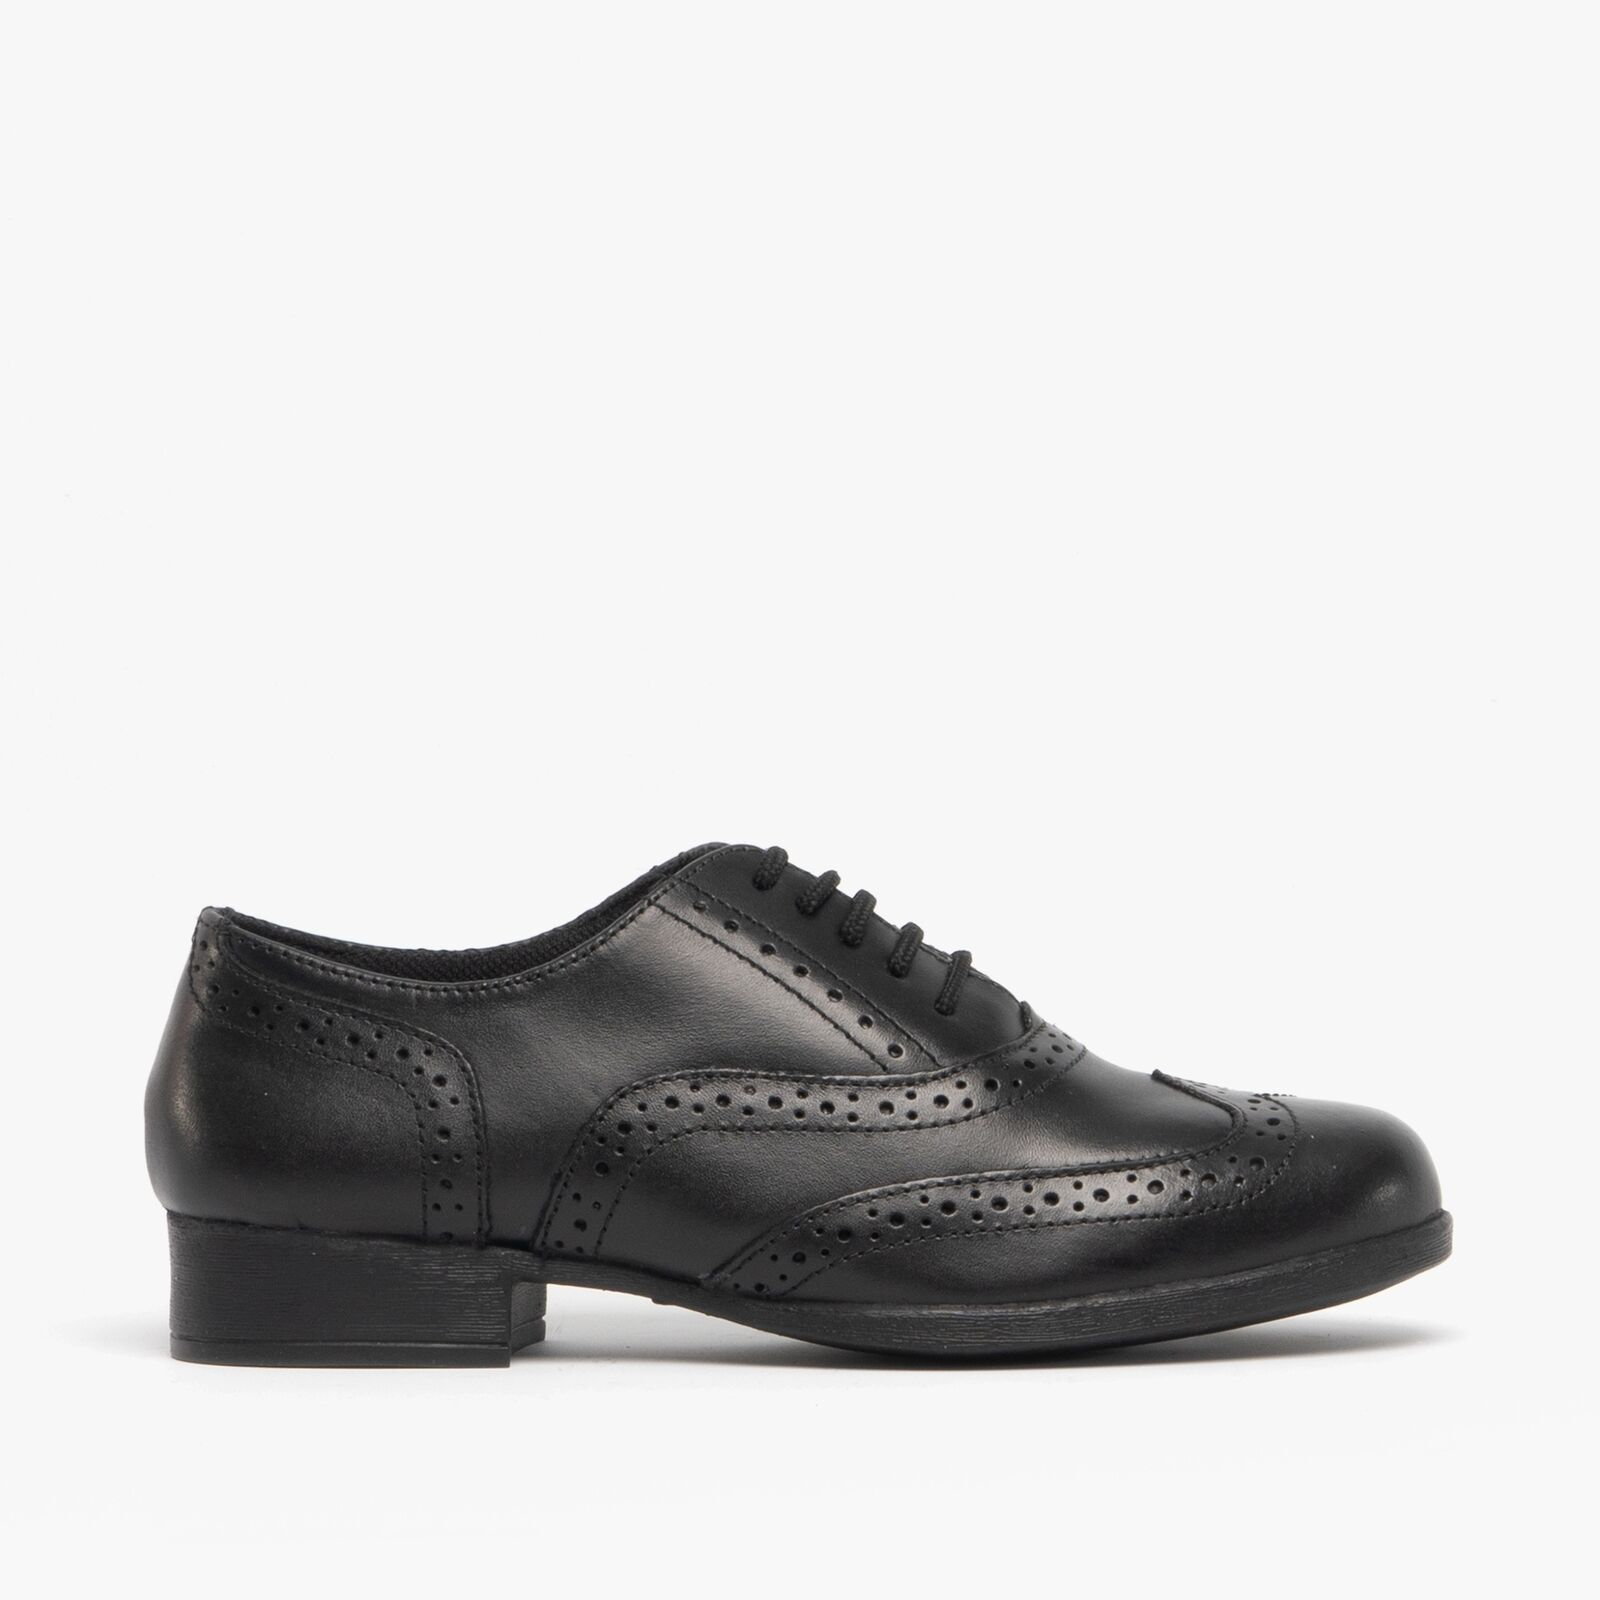 Hush Puppies KADA Girls Leather Lace Up Comfy Brogue School Shoes Black